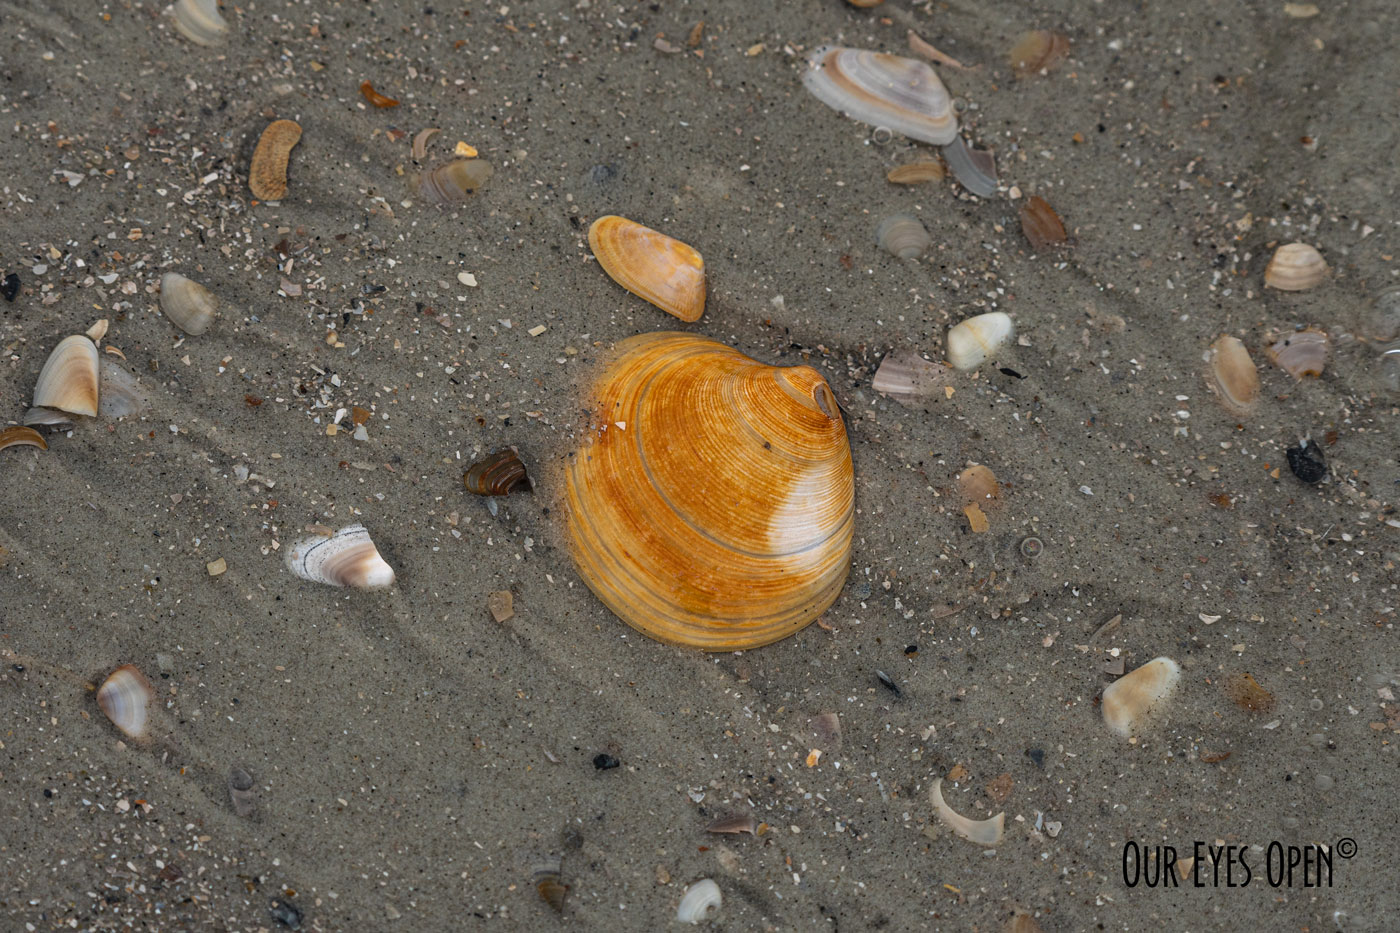 Shell washed ashore from the tide in the Atlantic Ocean at Florida beach.